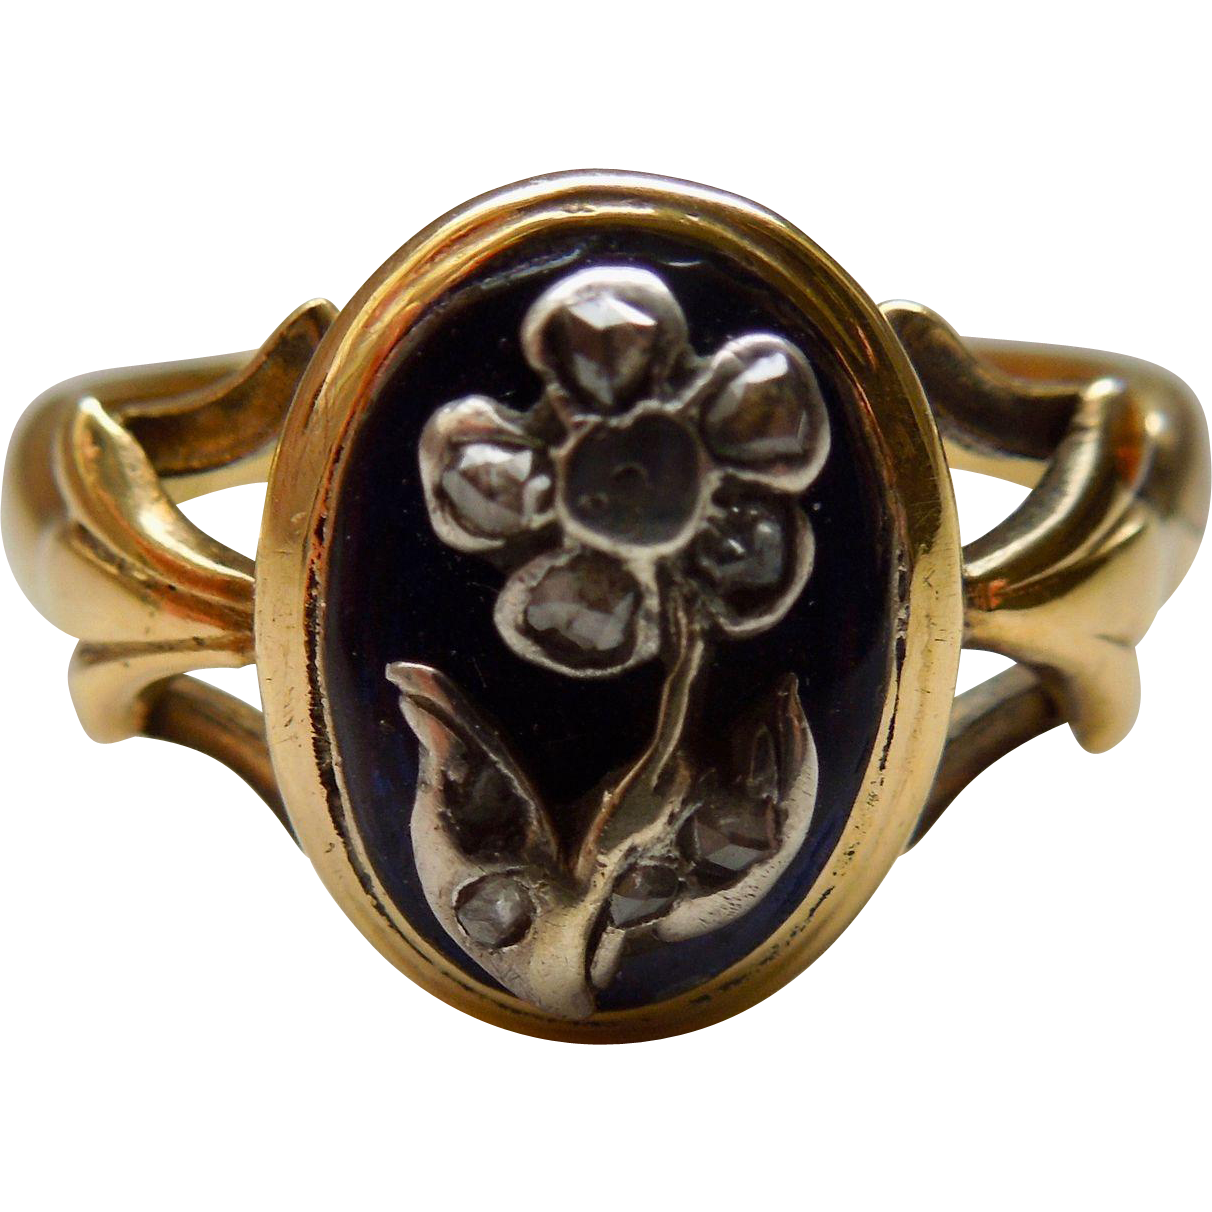 Memorial Ring, Rose Cut Diamonds on Verre Eglomise, Georgian